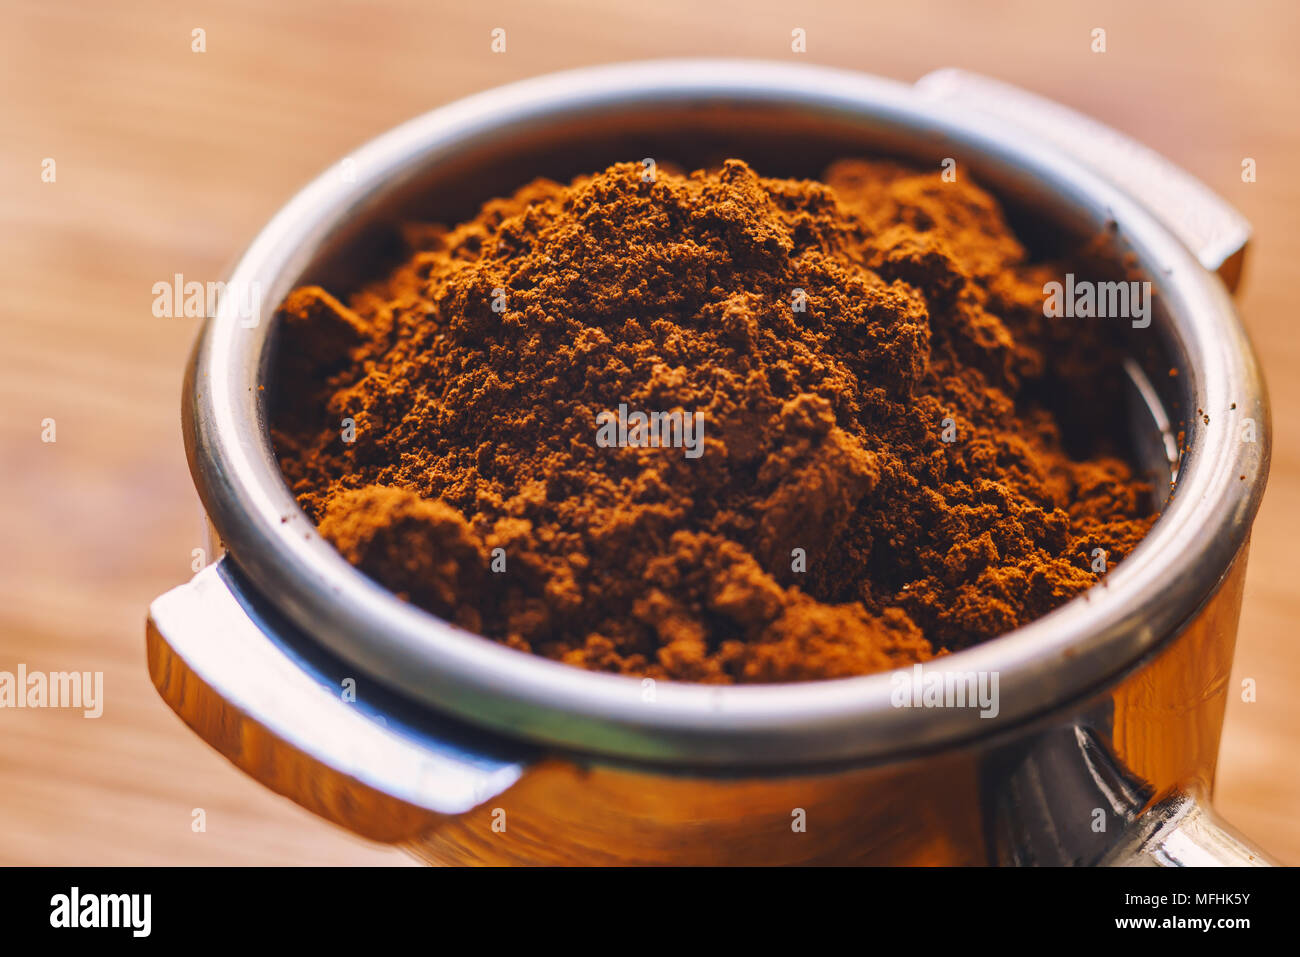 ground coffee in a holder - Stock Image